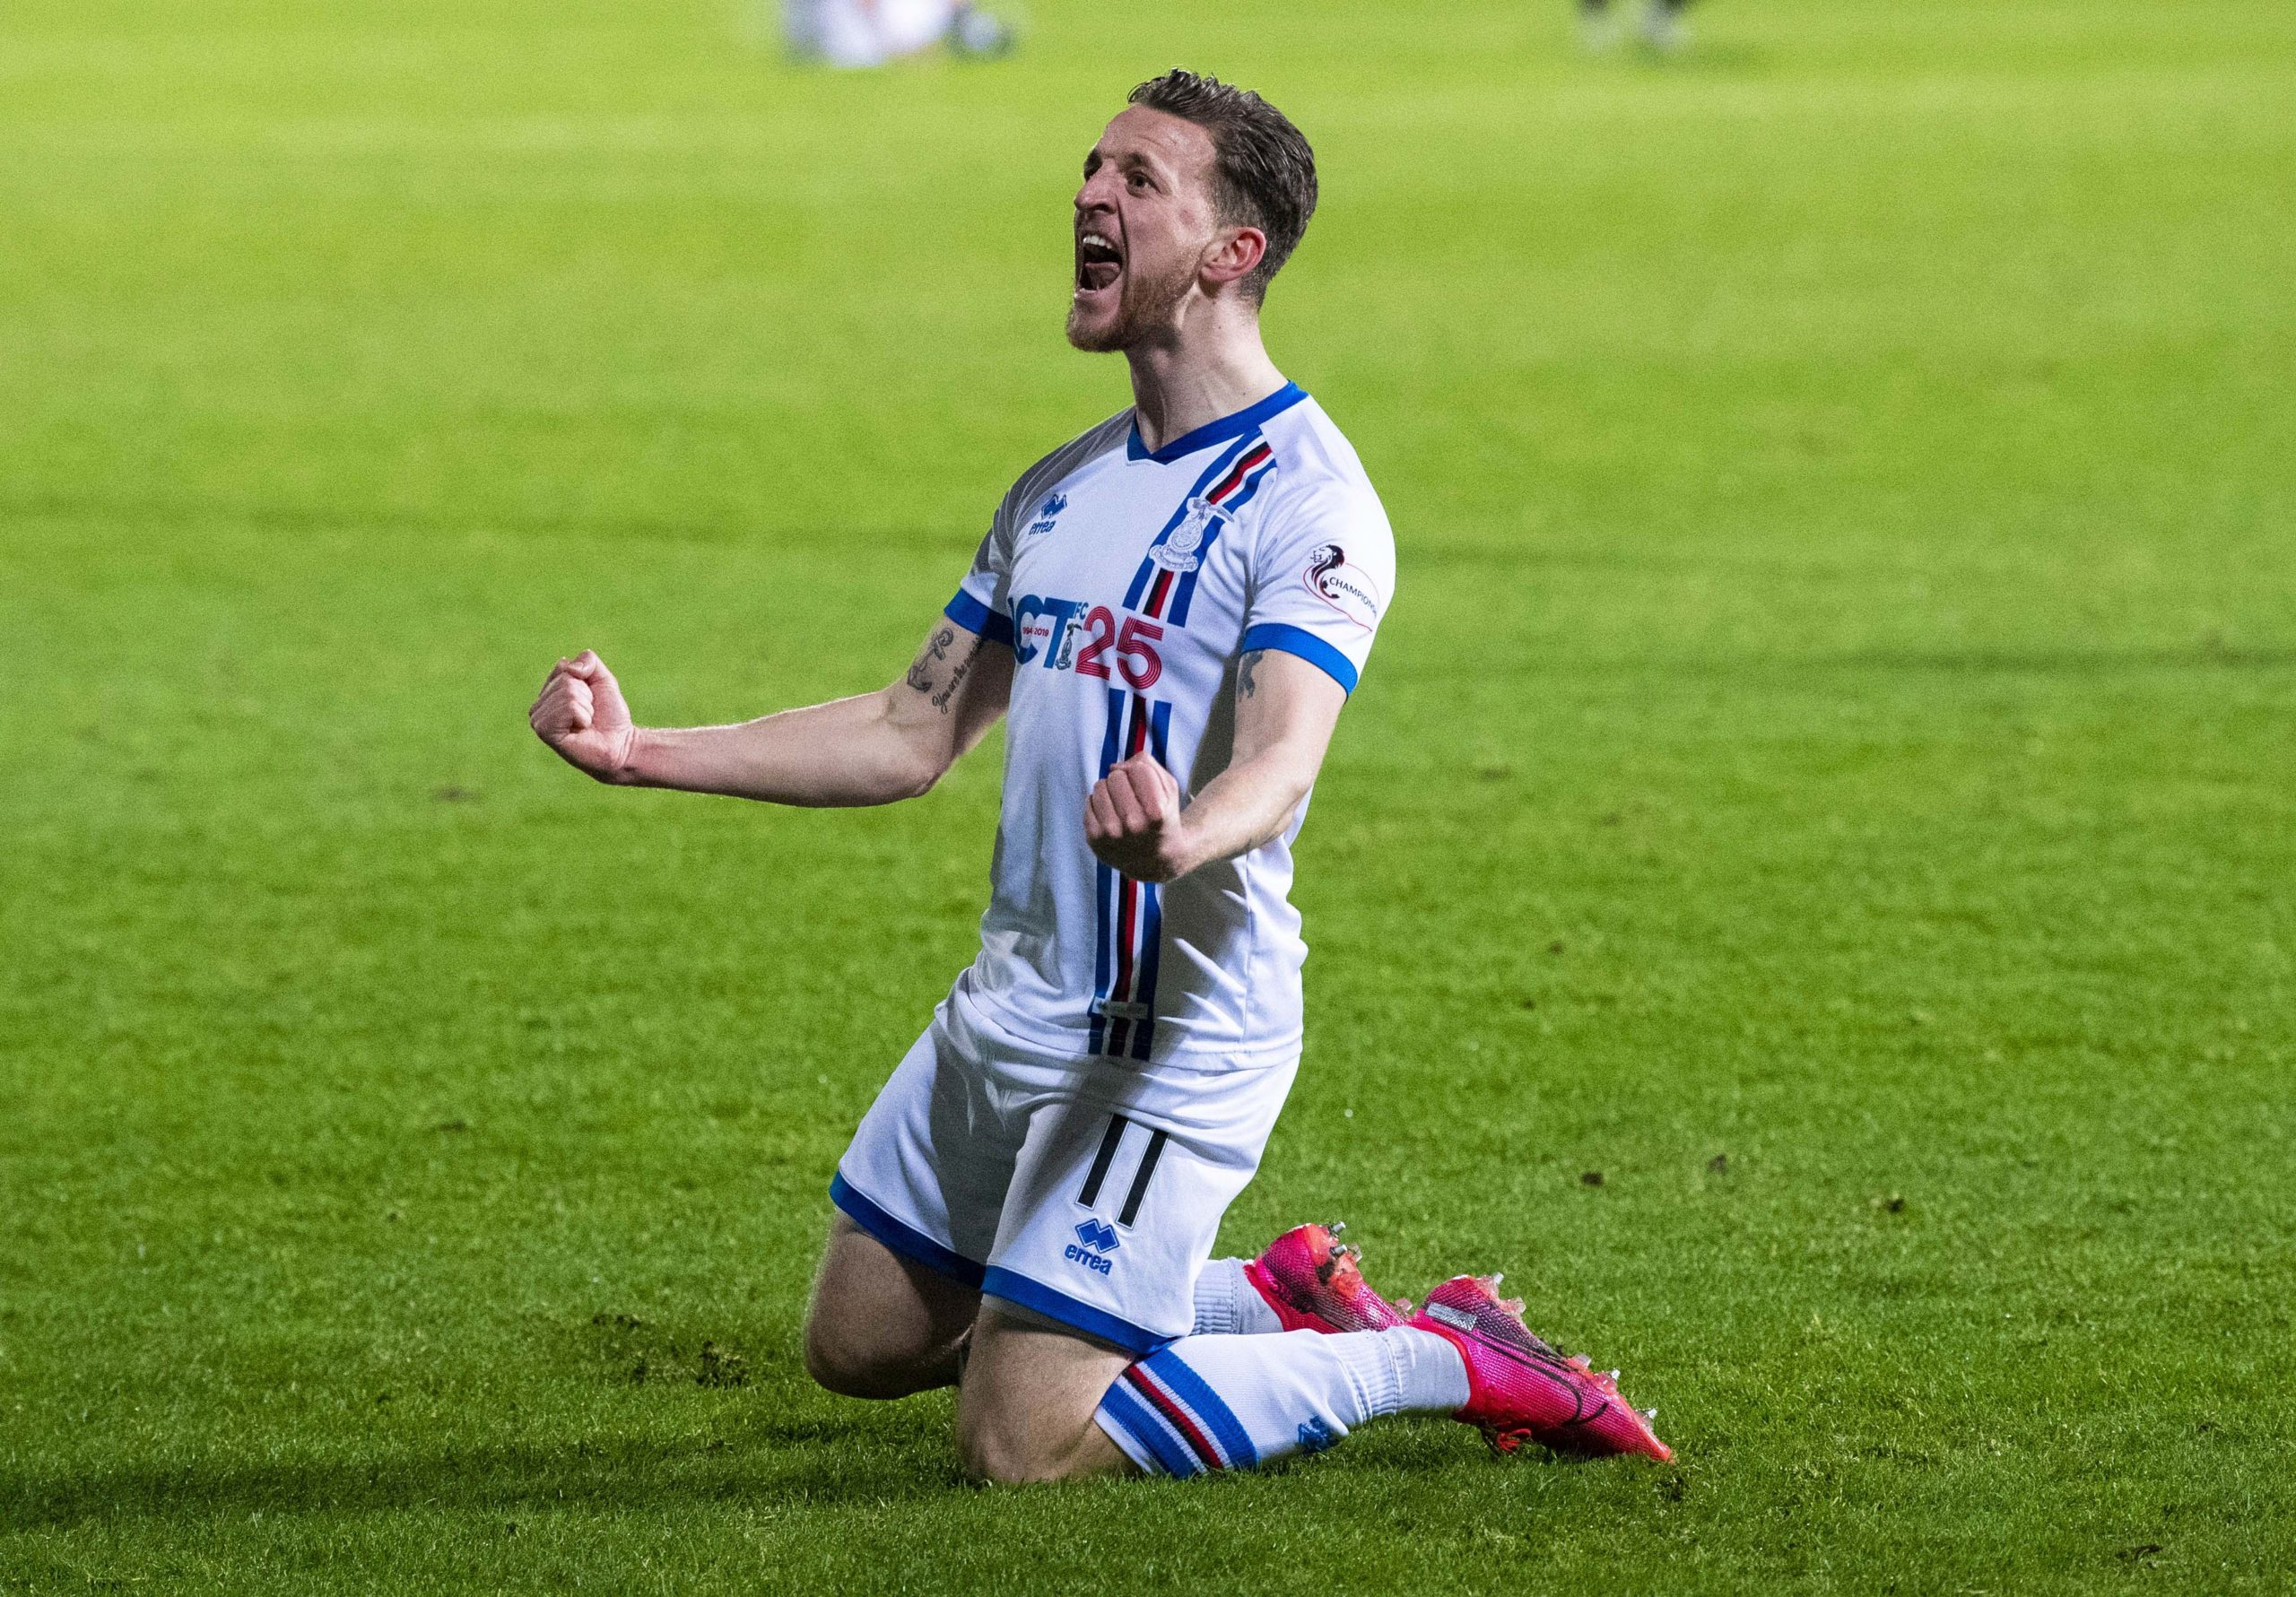 Tom Walsh celebrates making it 2-1 to Inverness during the Ladbrokes Championship match between Dunfermline and Inverness Caledonian Thistle.